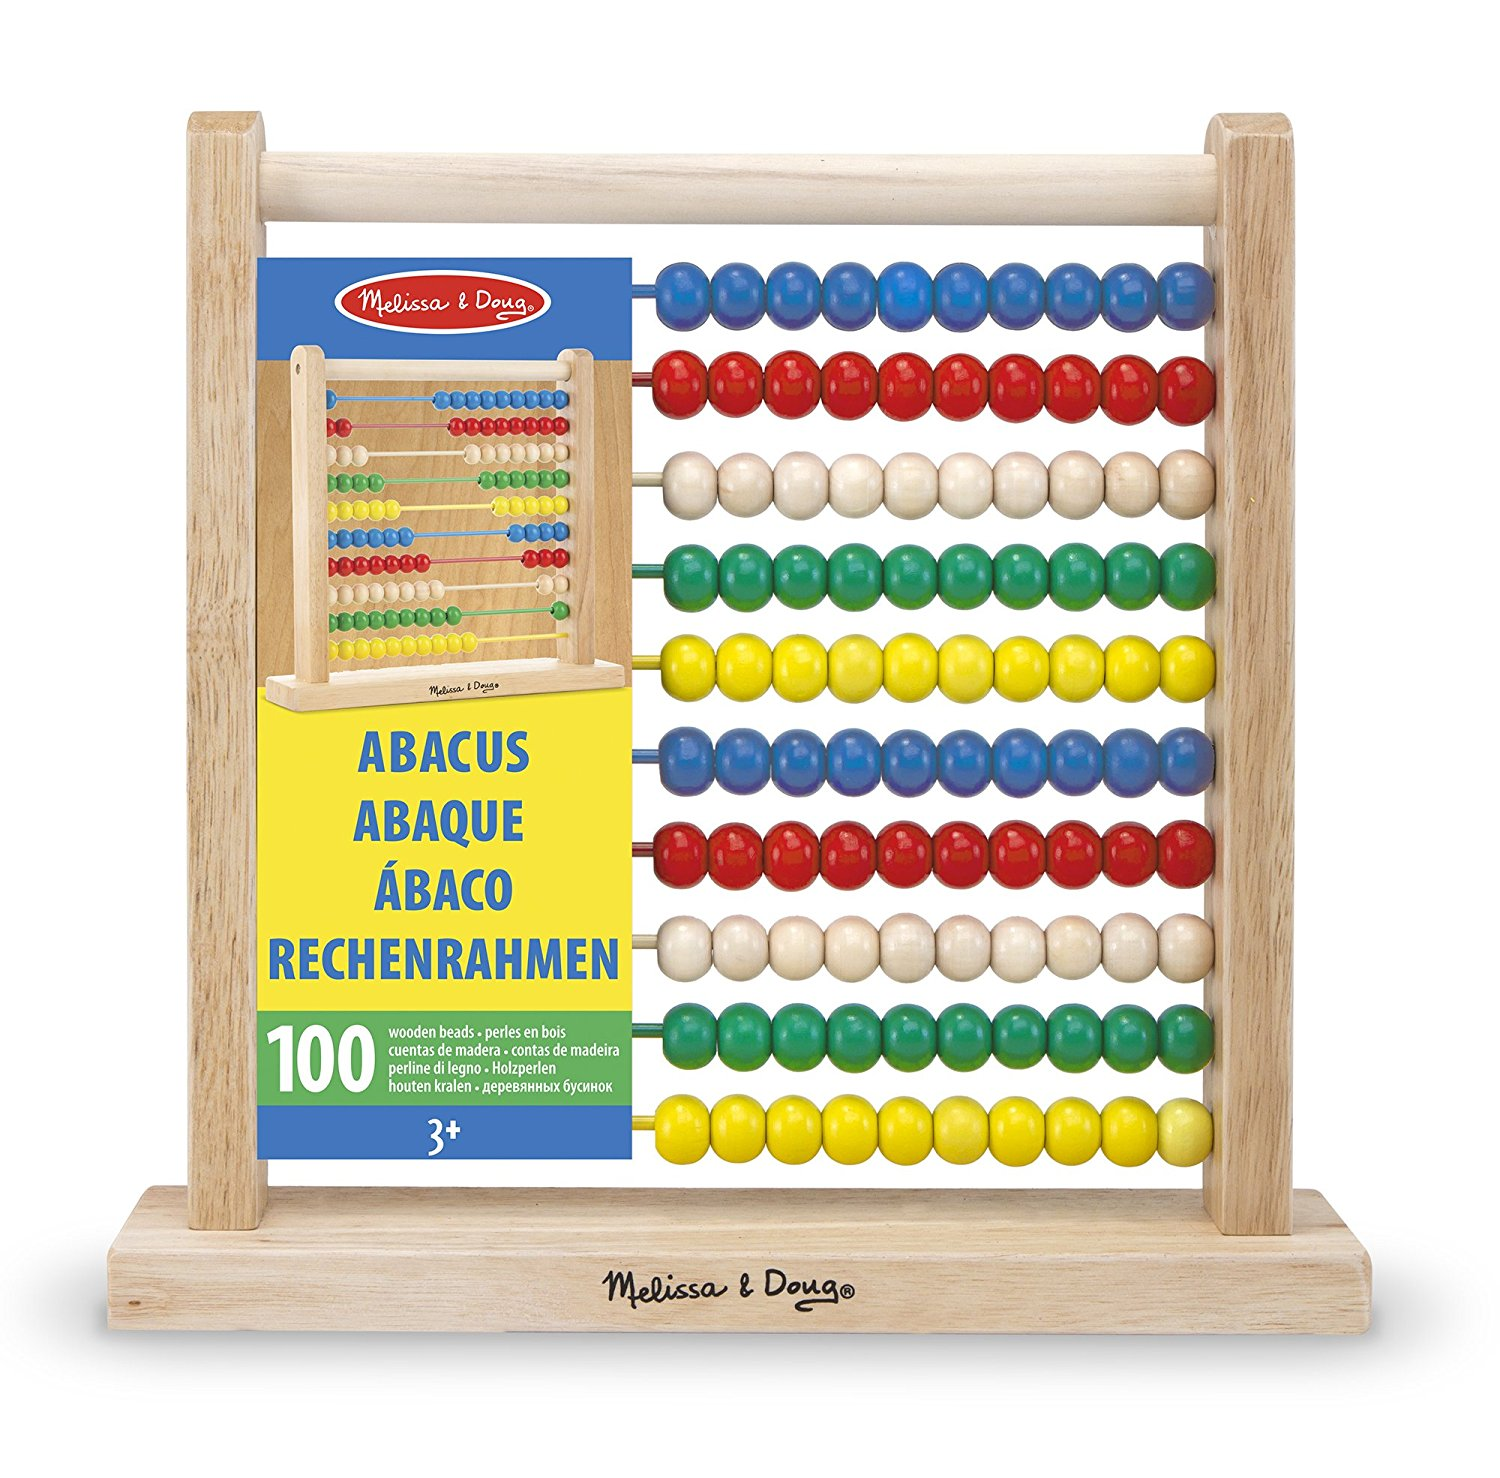 Abacus Classic Wooden Toy 100 beads